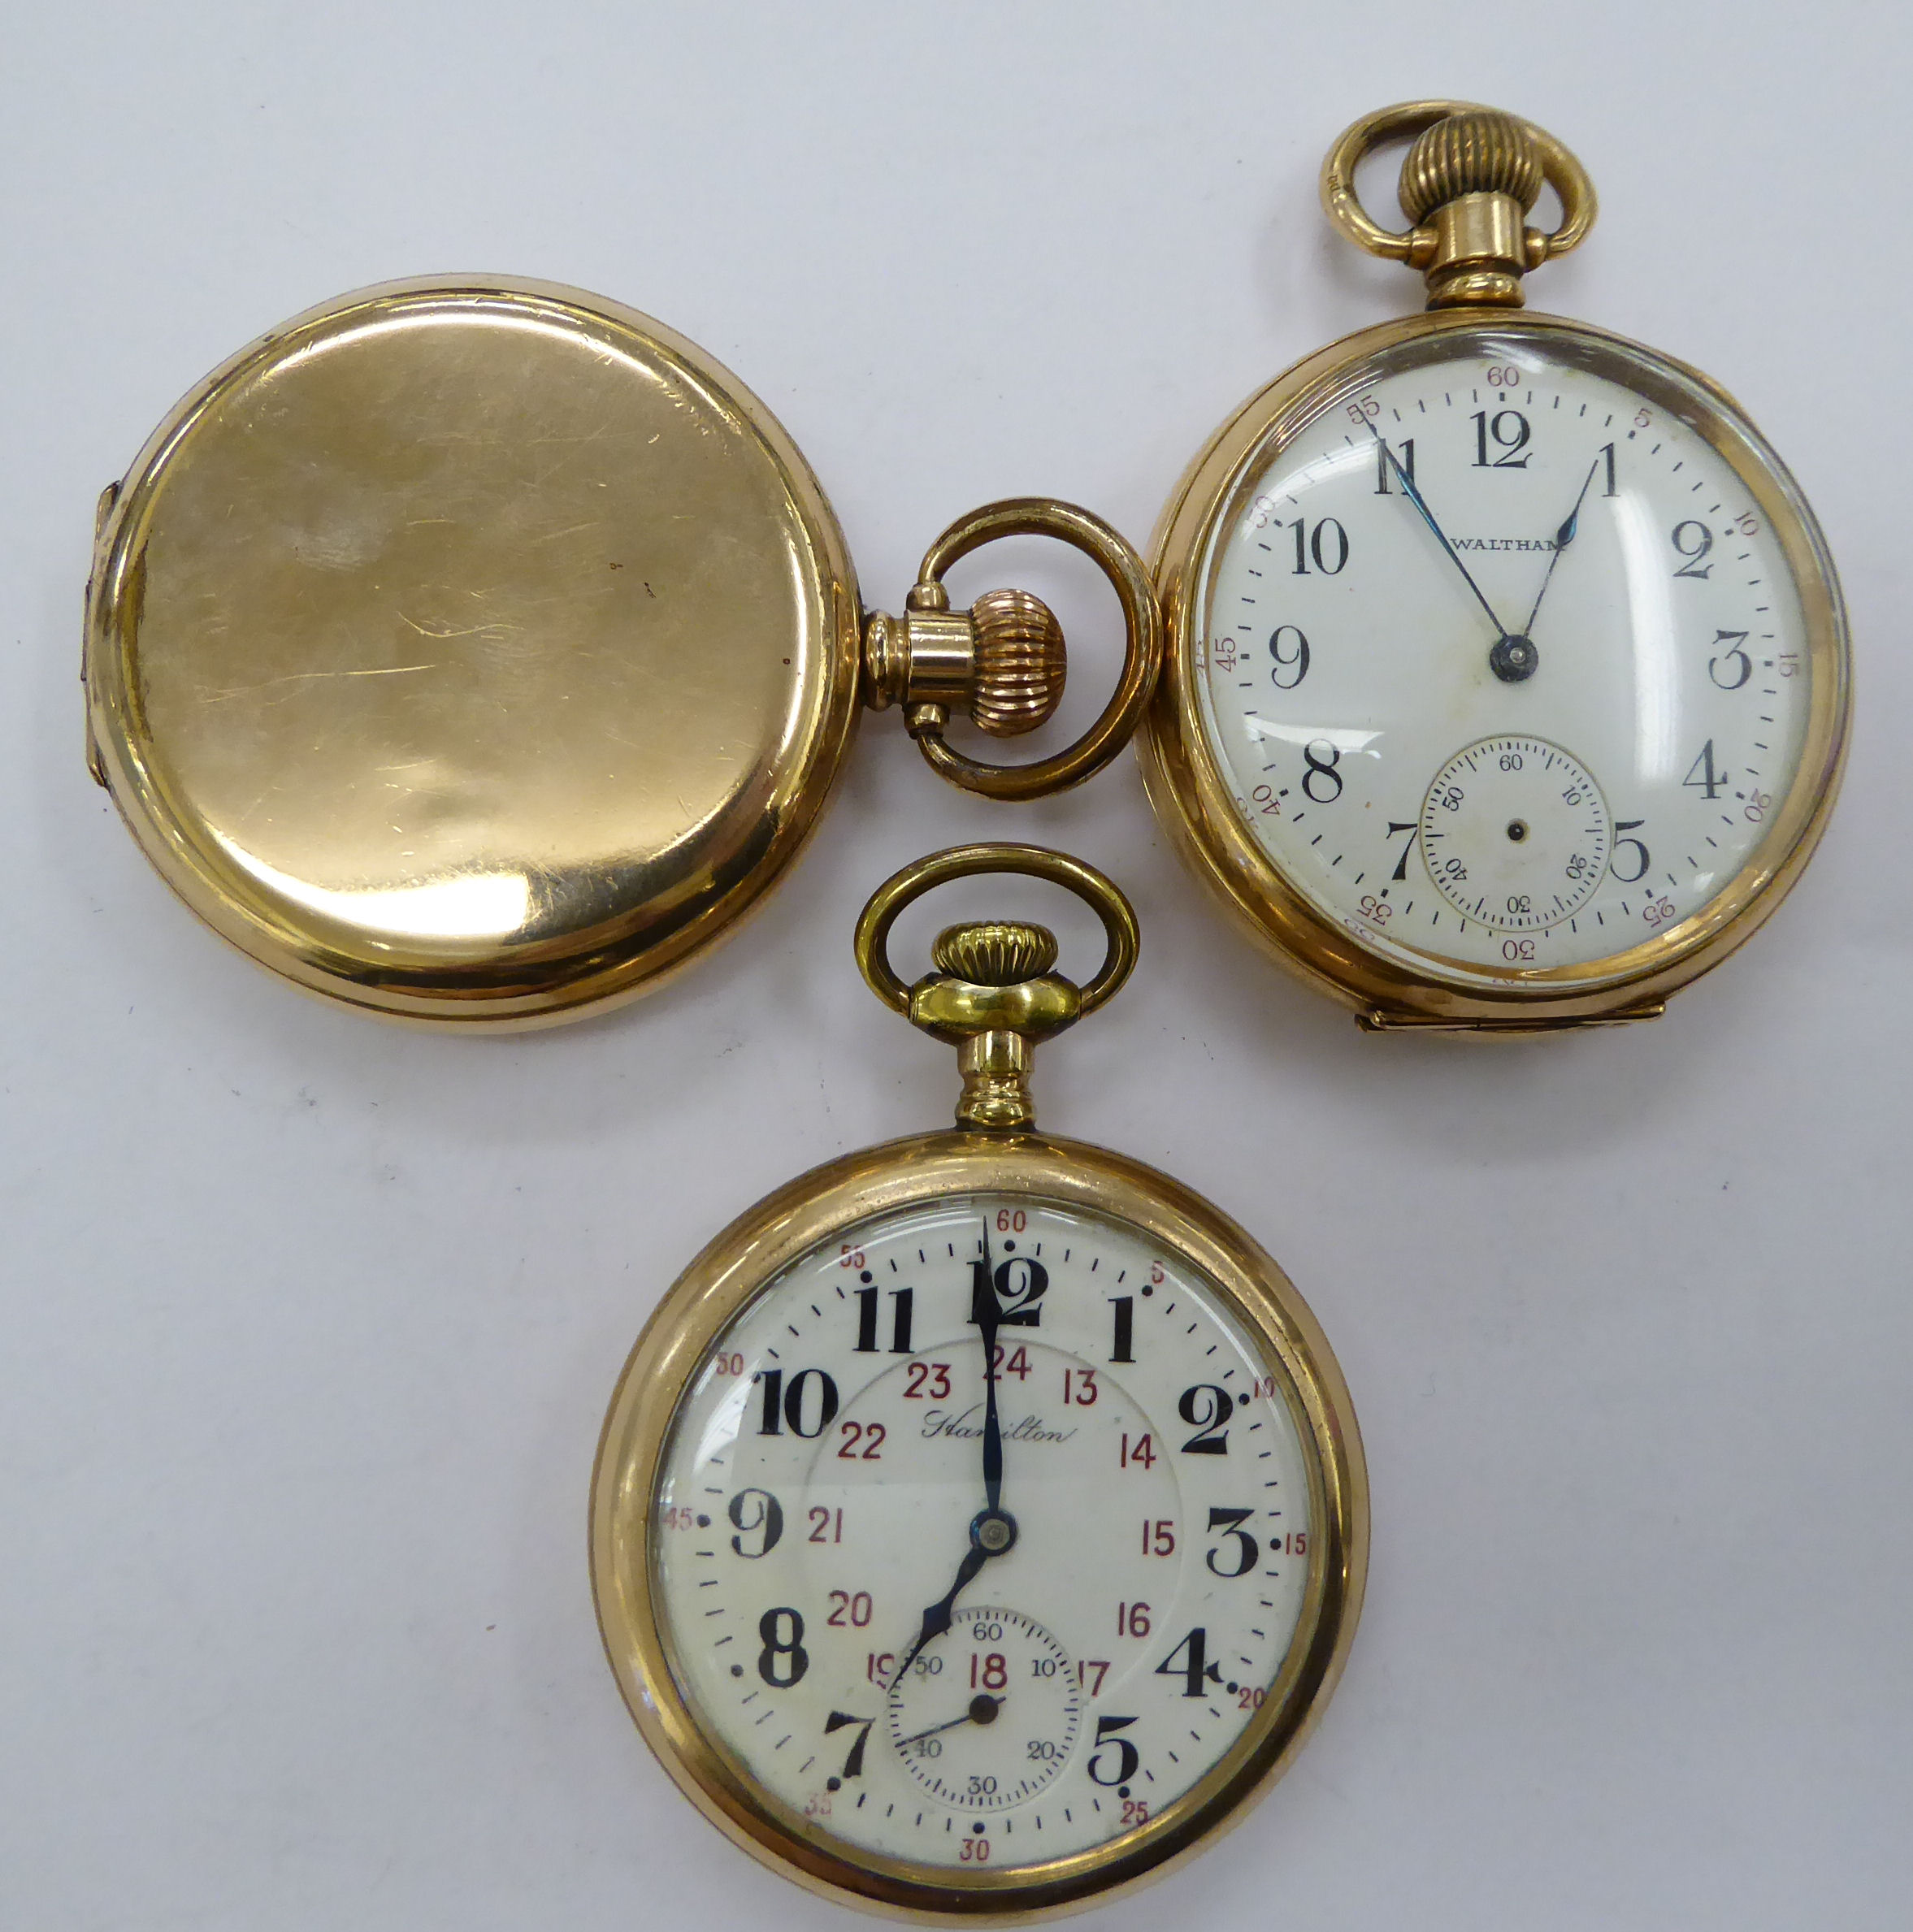 Three late 19th/early 20thC gold plated pocket watches with enamel Roman and Arabic dials - Image 2 of 3